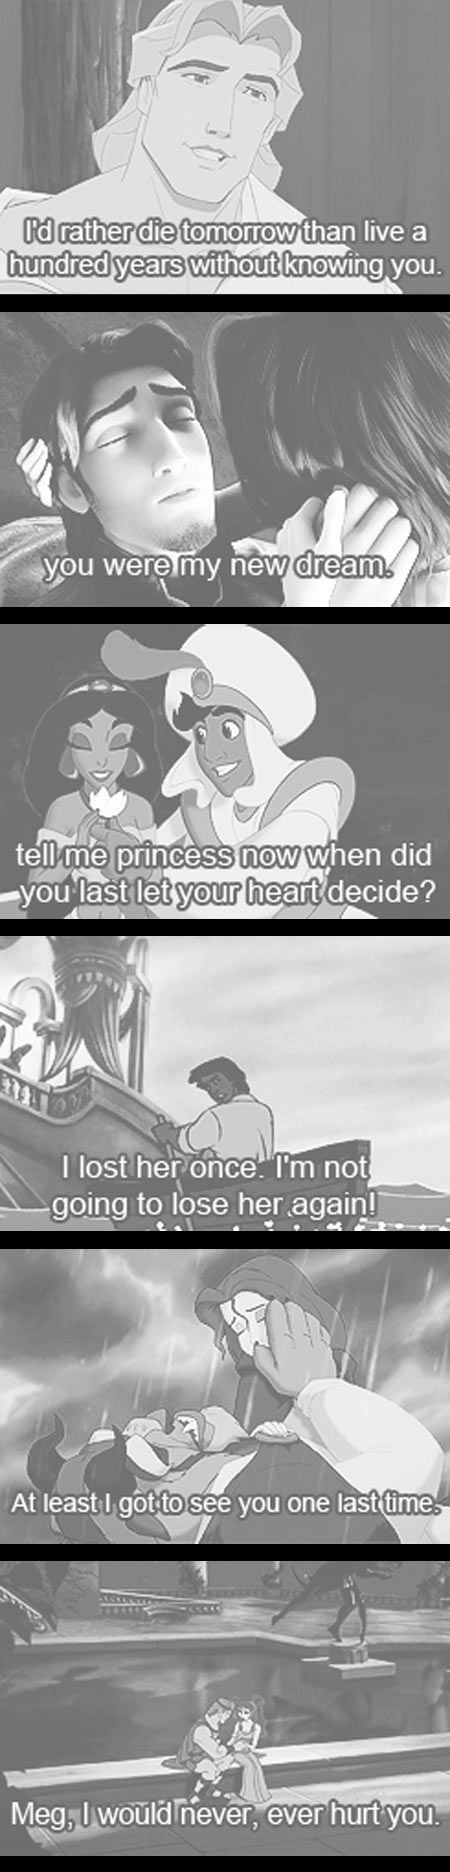 Very Famous Movie Quotes: Best 25+ Disney Movie Quotes Ideas On Pinterest